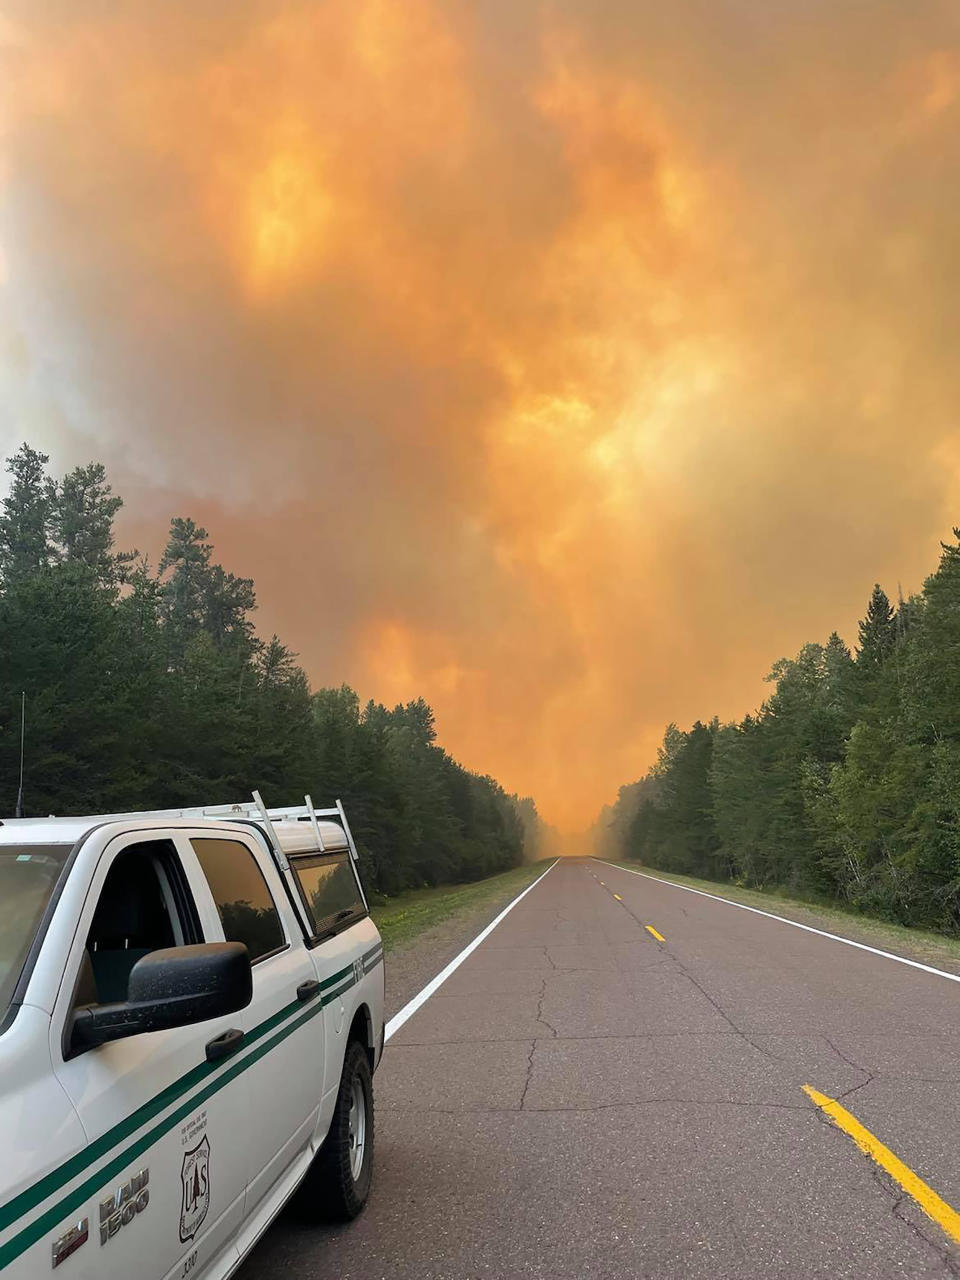 This Thursday, Aug. 19, 2021, photo provided by the U.S. Forest Service, a rapidly growing wildfire rises in the background in northeastern Minnesota. U.S. Forest Service officials have warned home and cabin owners who fled a wildfire in northeastern Minnesota that the winds could shift this weekend, putting their properties in danger. Dozens of people got the warning at a public meeting Thursday, Aug. 19, 2021, evening in the small town of Finland, where officials gave them the latest about the Greenwood Lake fire and their strategy for trying to stop it. (Nick Petrack/U.S. Forest Service via AP)